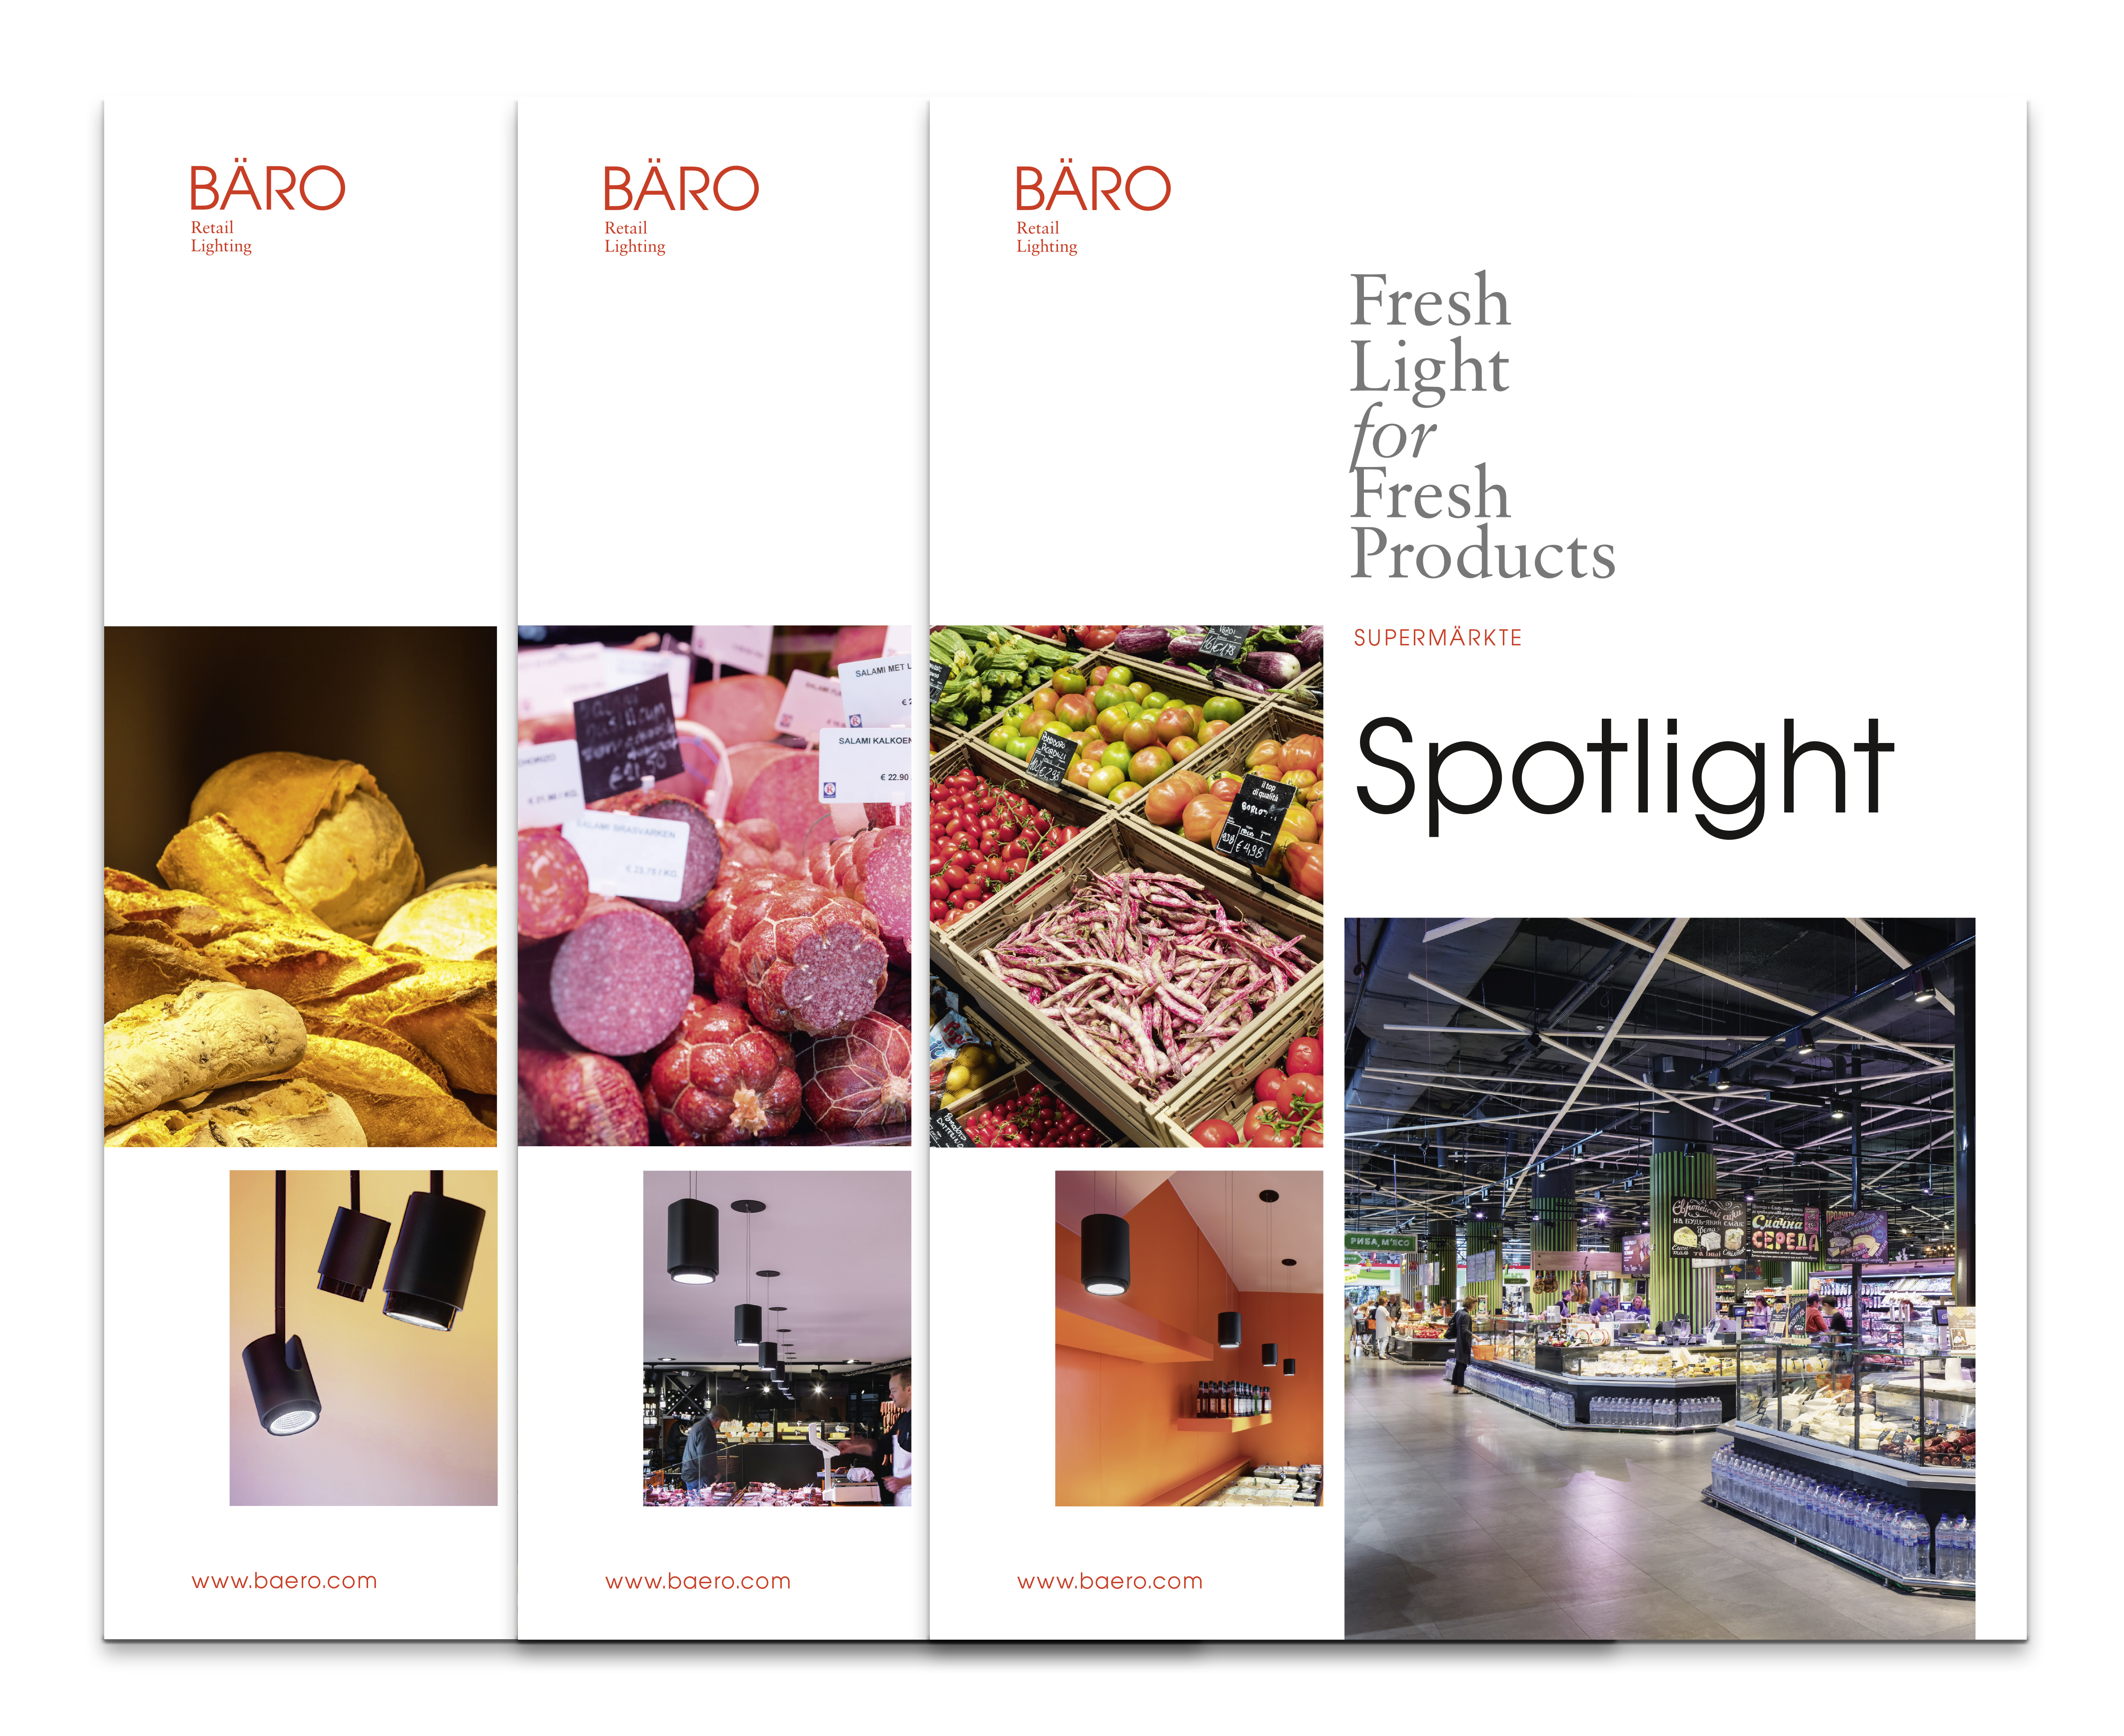 New Spotlight brochures from BÄRO